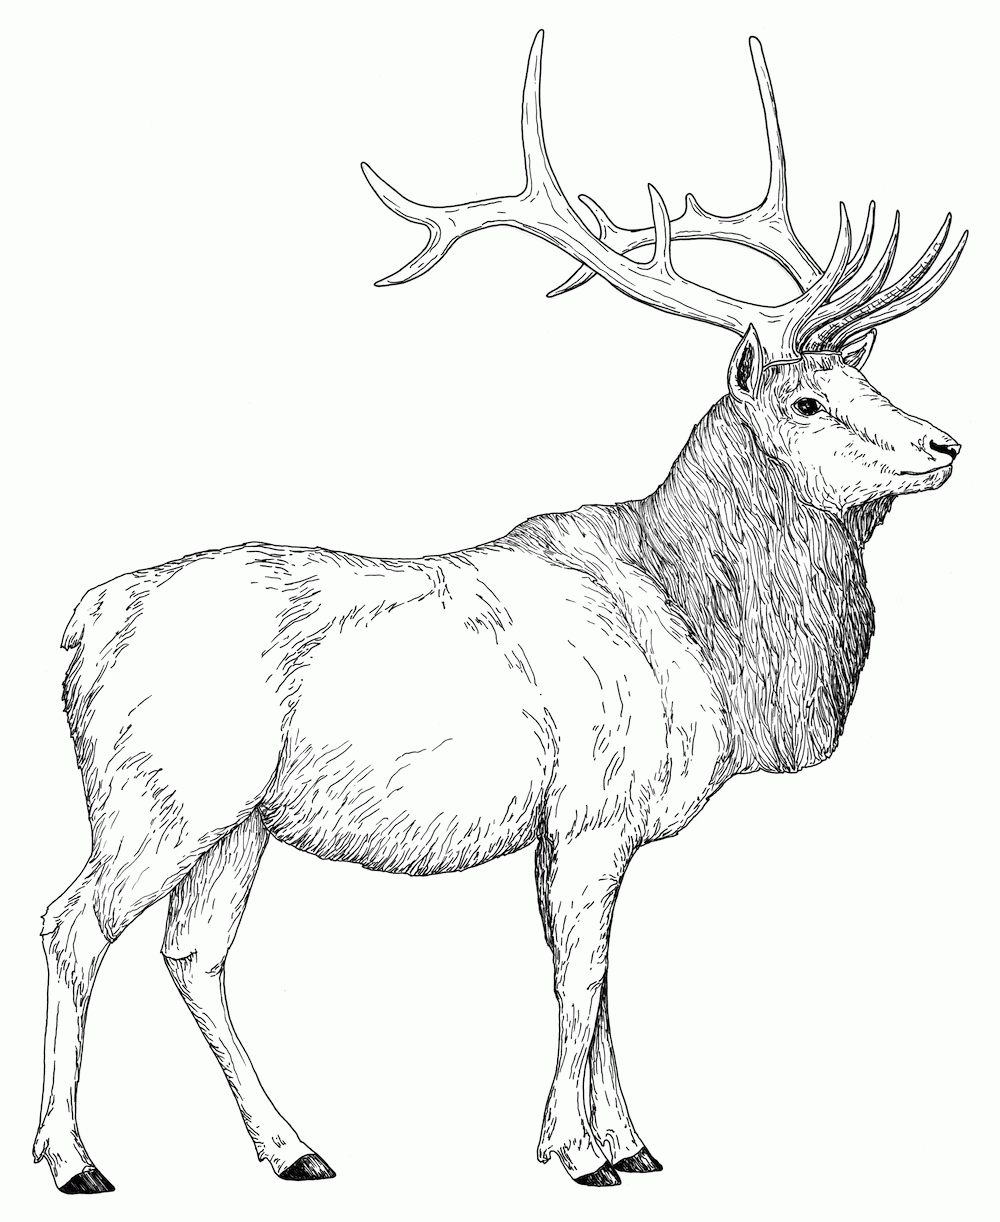 25 Elk Coloring Pages Selection | FREE COLORING PAGES - Part 2